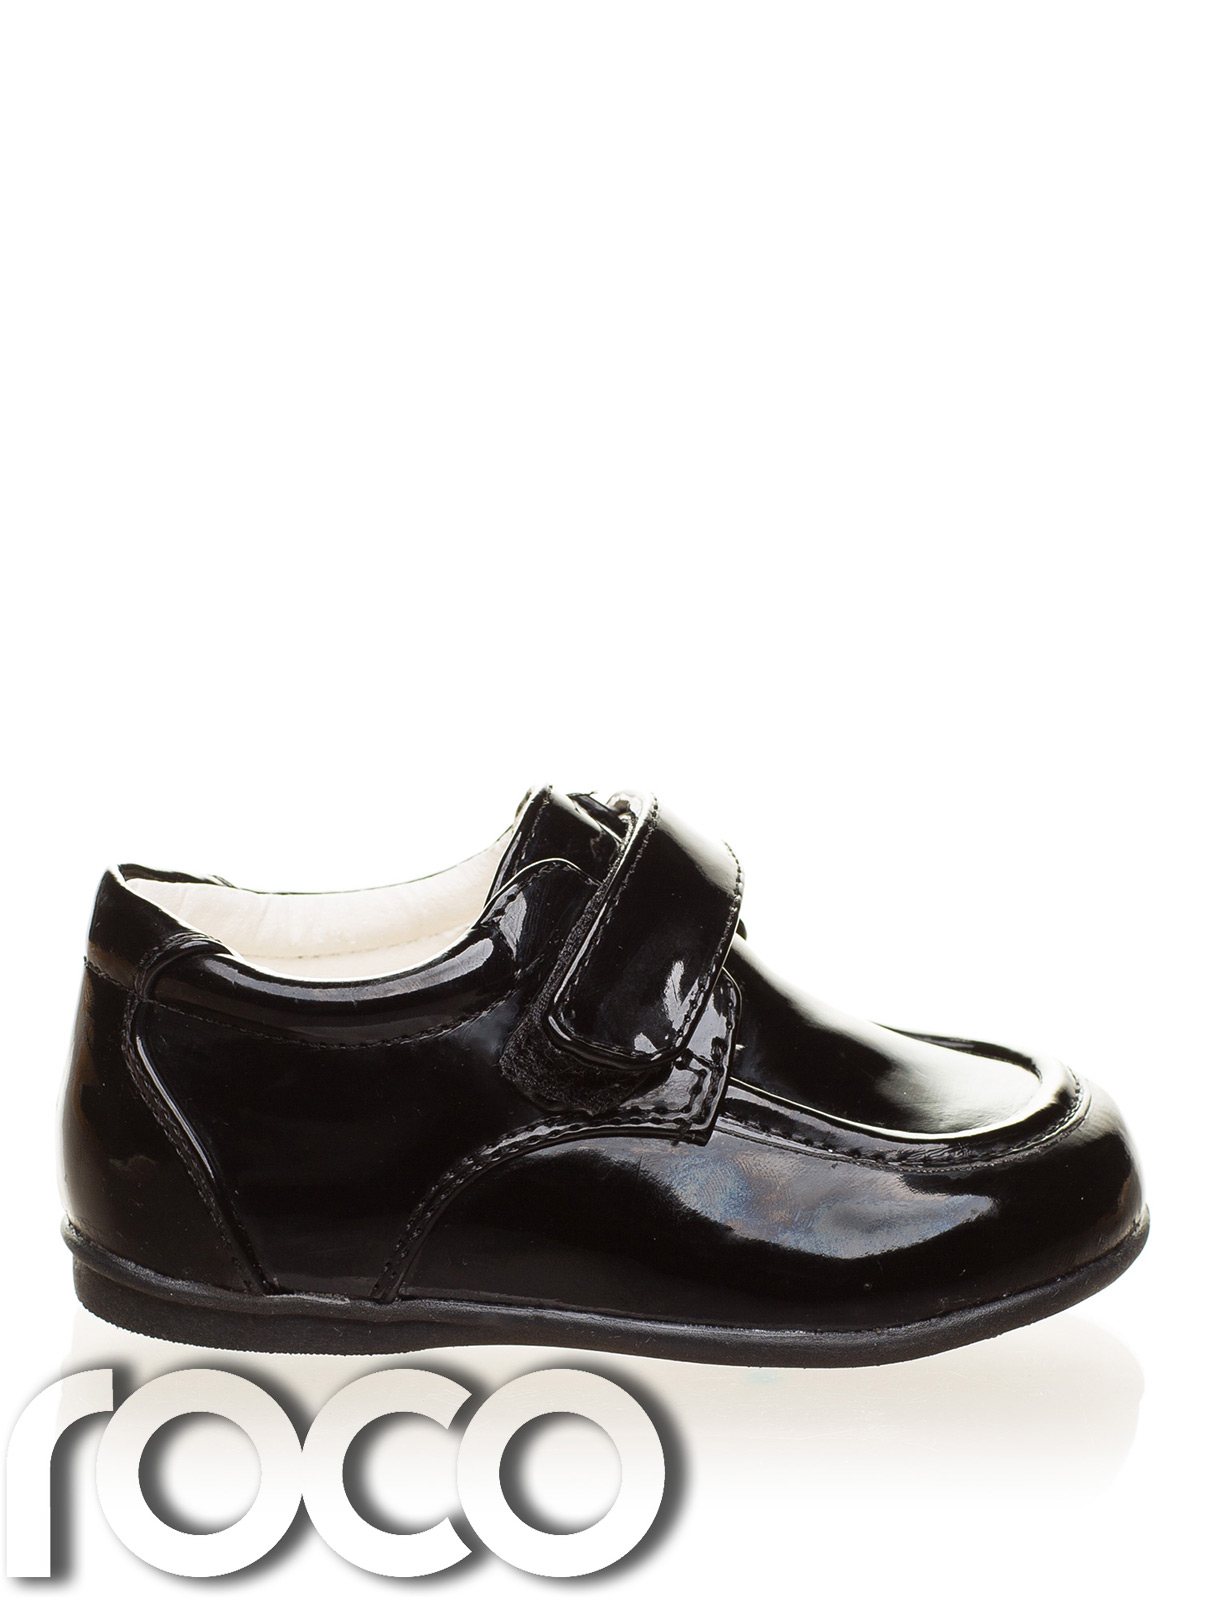 Toddler Black Shoes, Boys Black Wedding Shoes, Page Boy